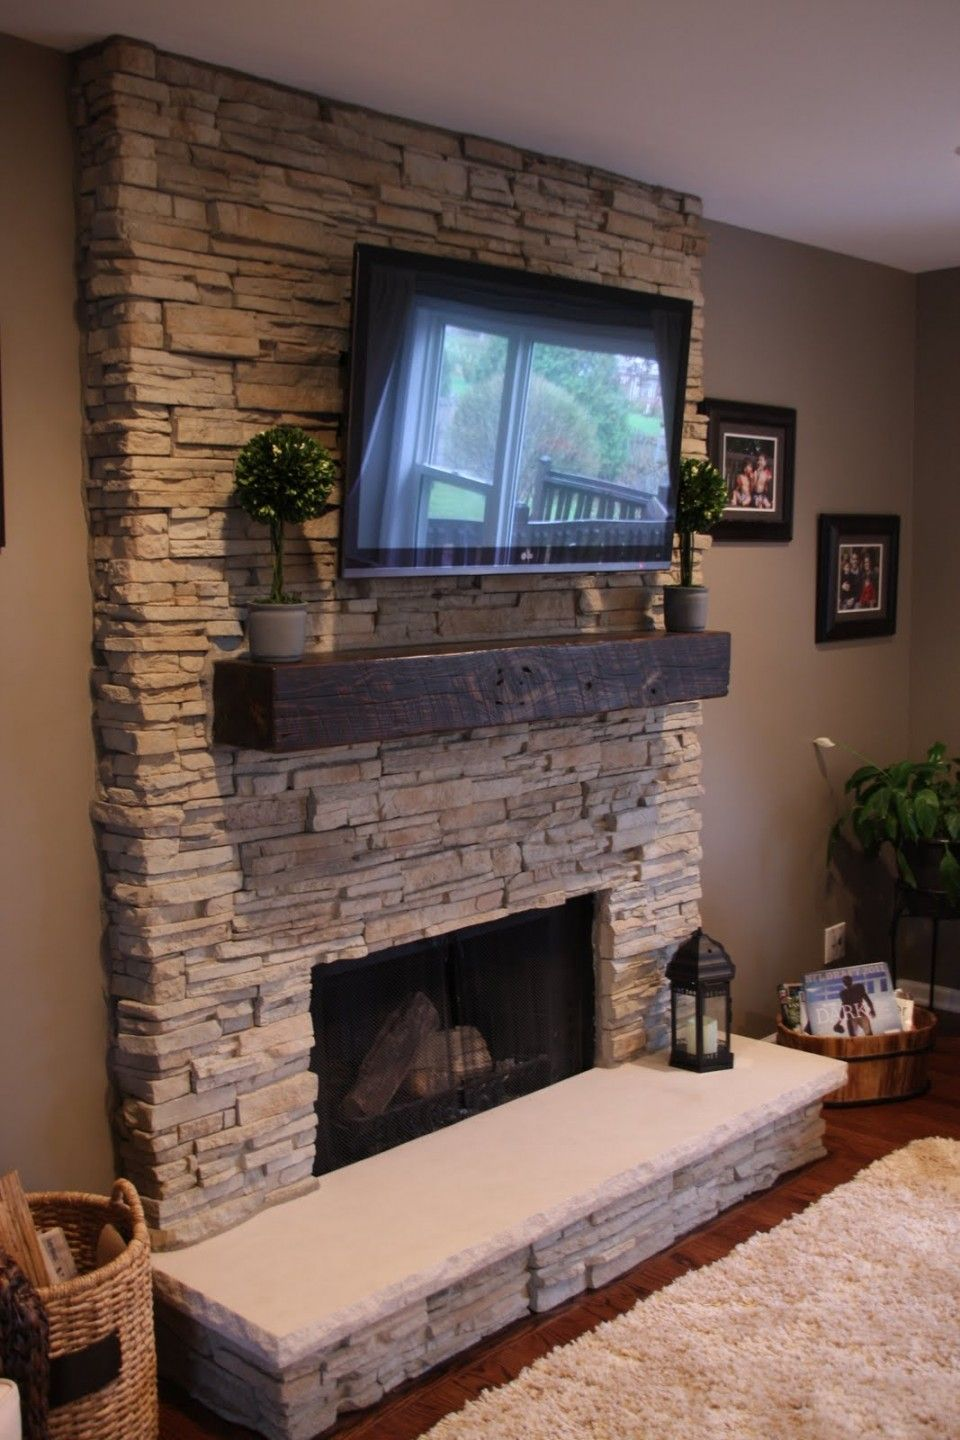 Small Living Room Decorating With Fireplace Gallery Small Living Room Ideas With Fireplace And Tv Sloped